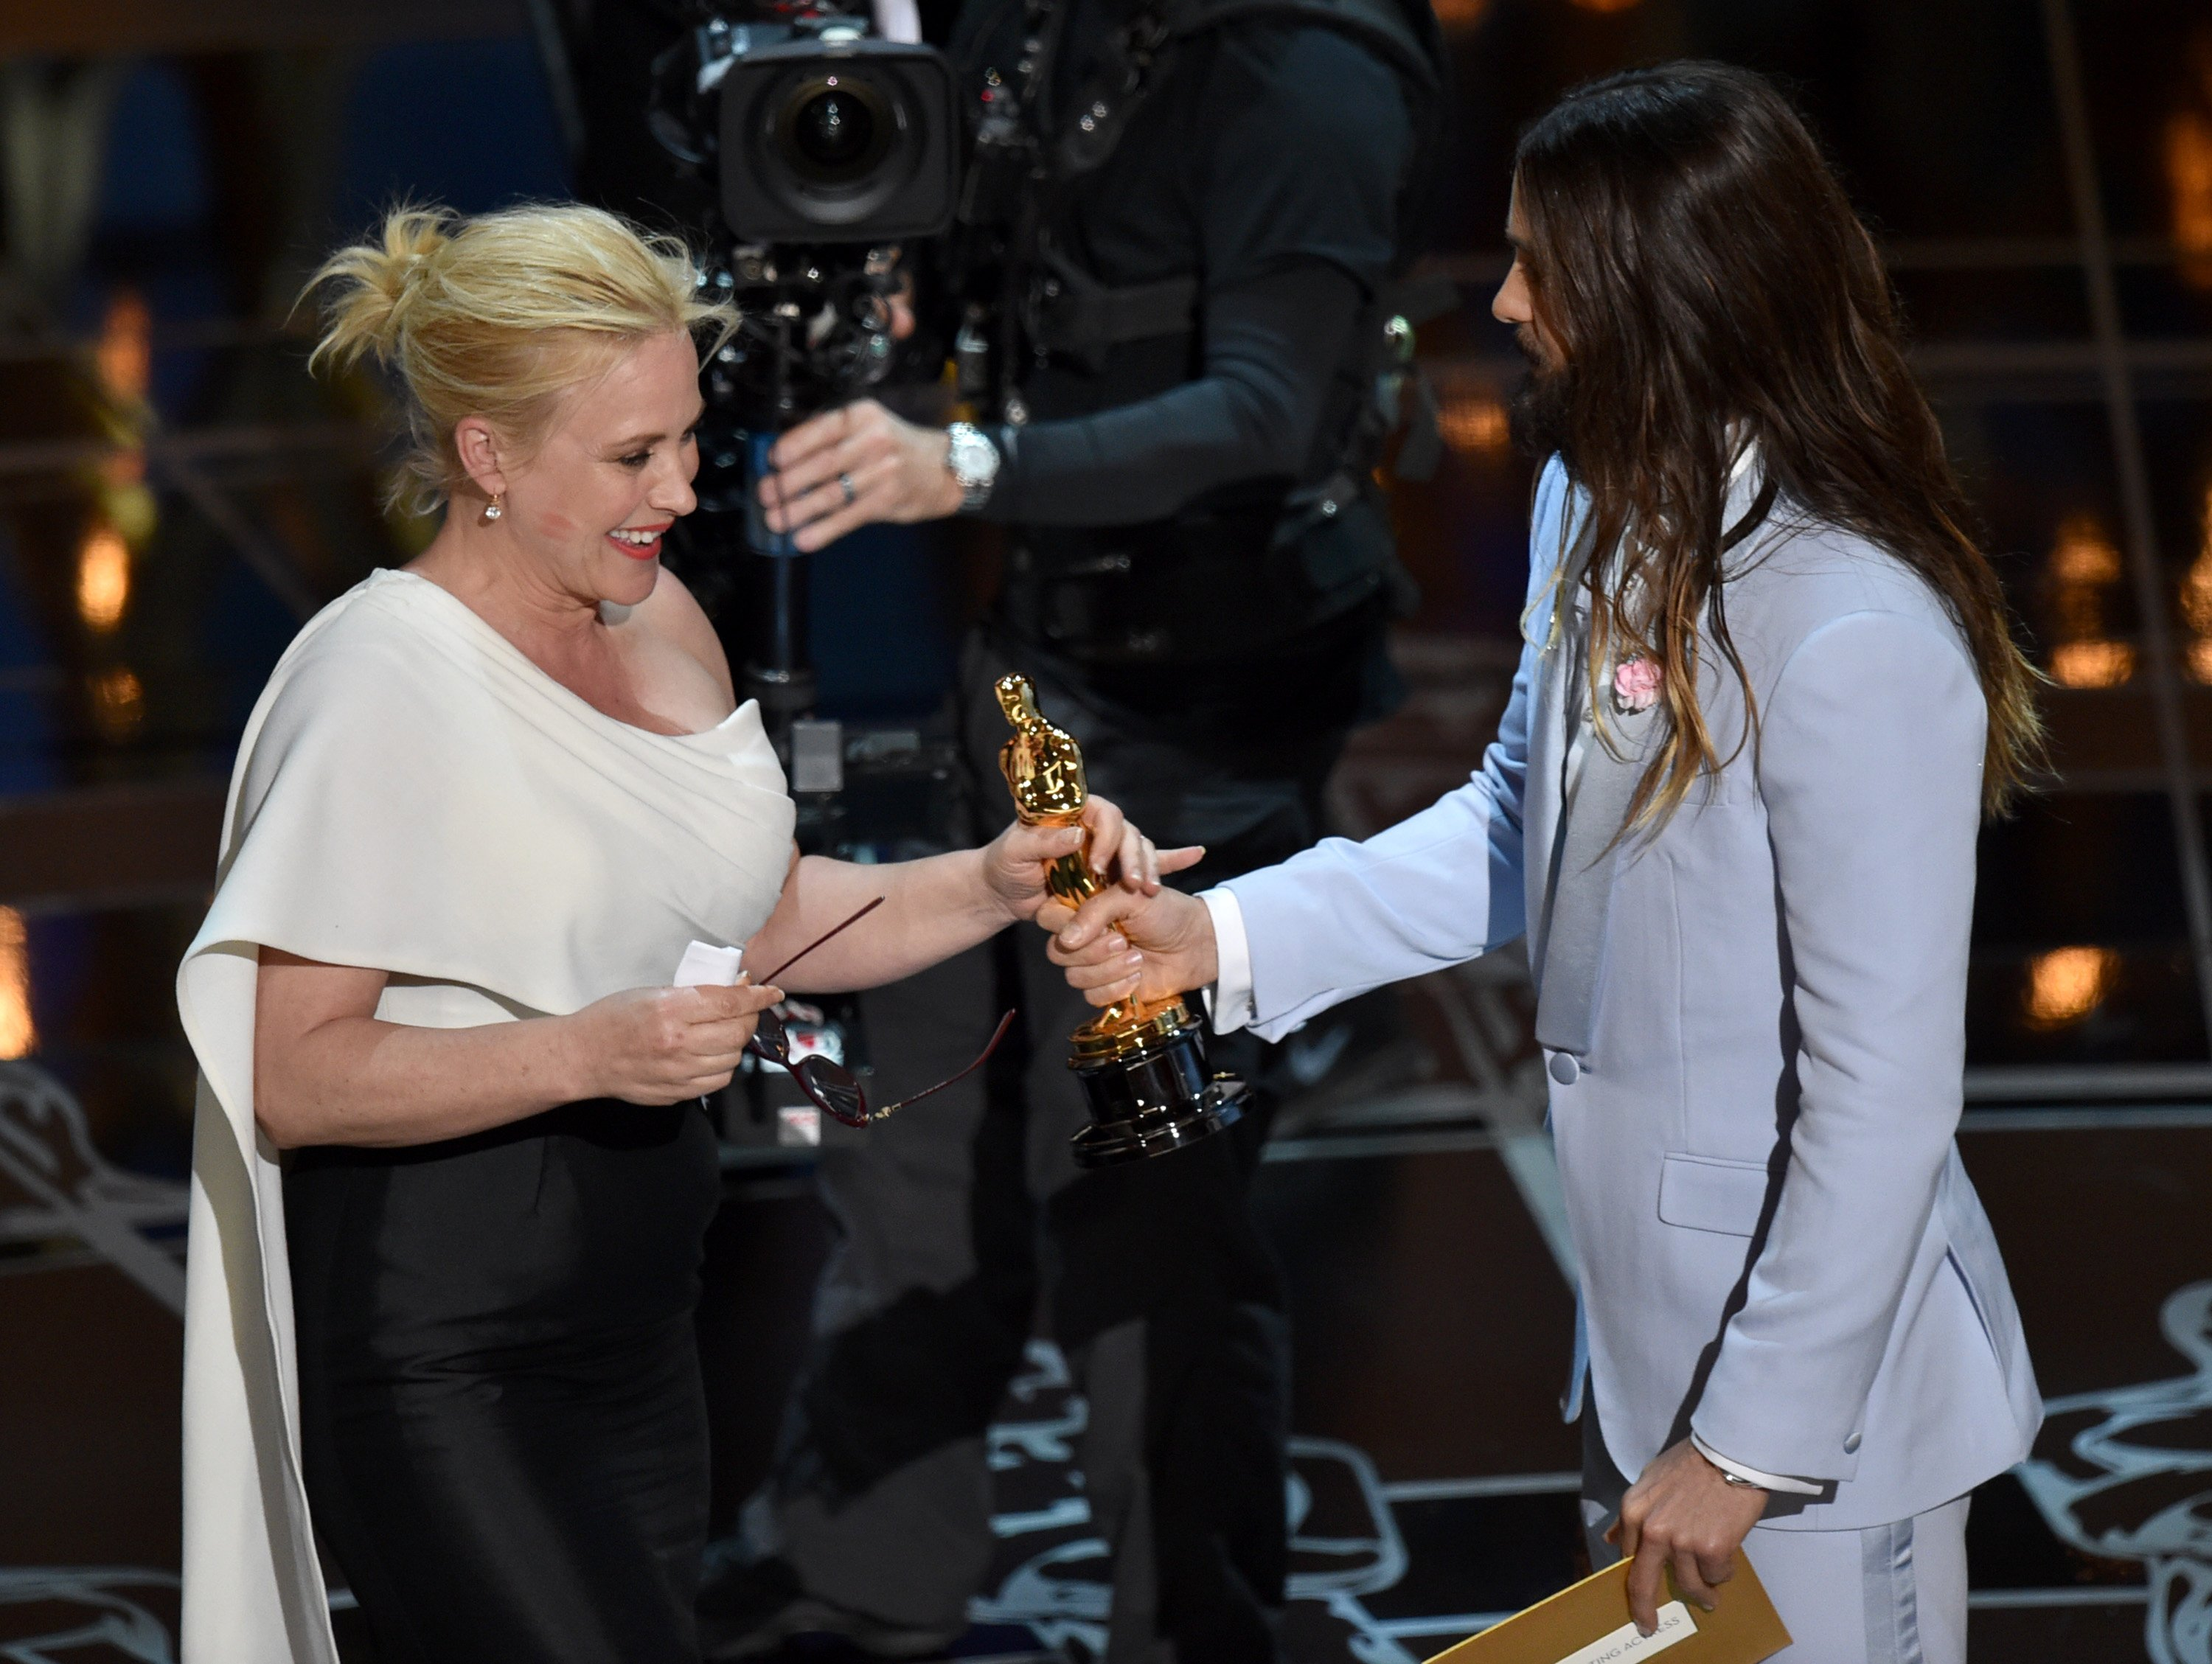 red ne moore and birdman scoop oscars as hollywood honours patricia arquette accepts her oscar for best actress in a supporting role from jared leto photo ap